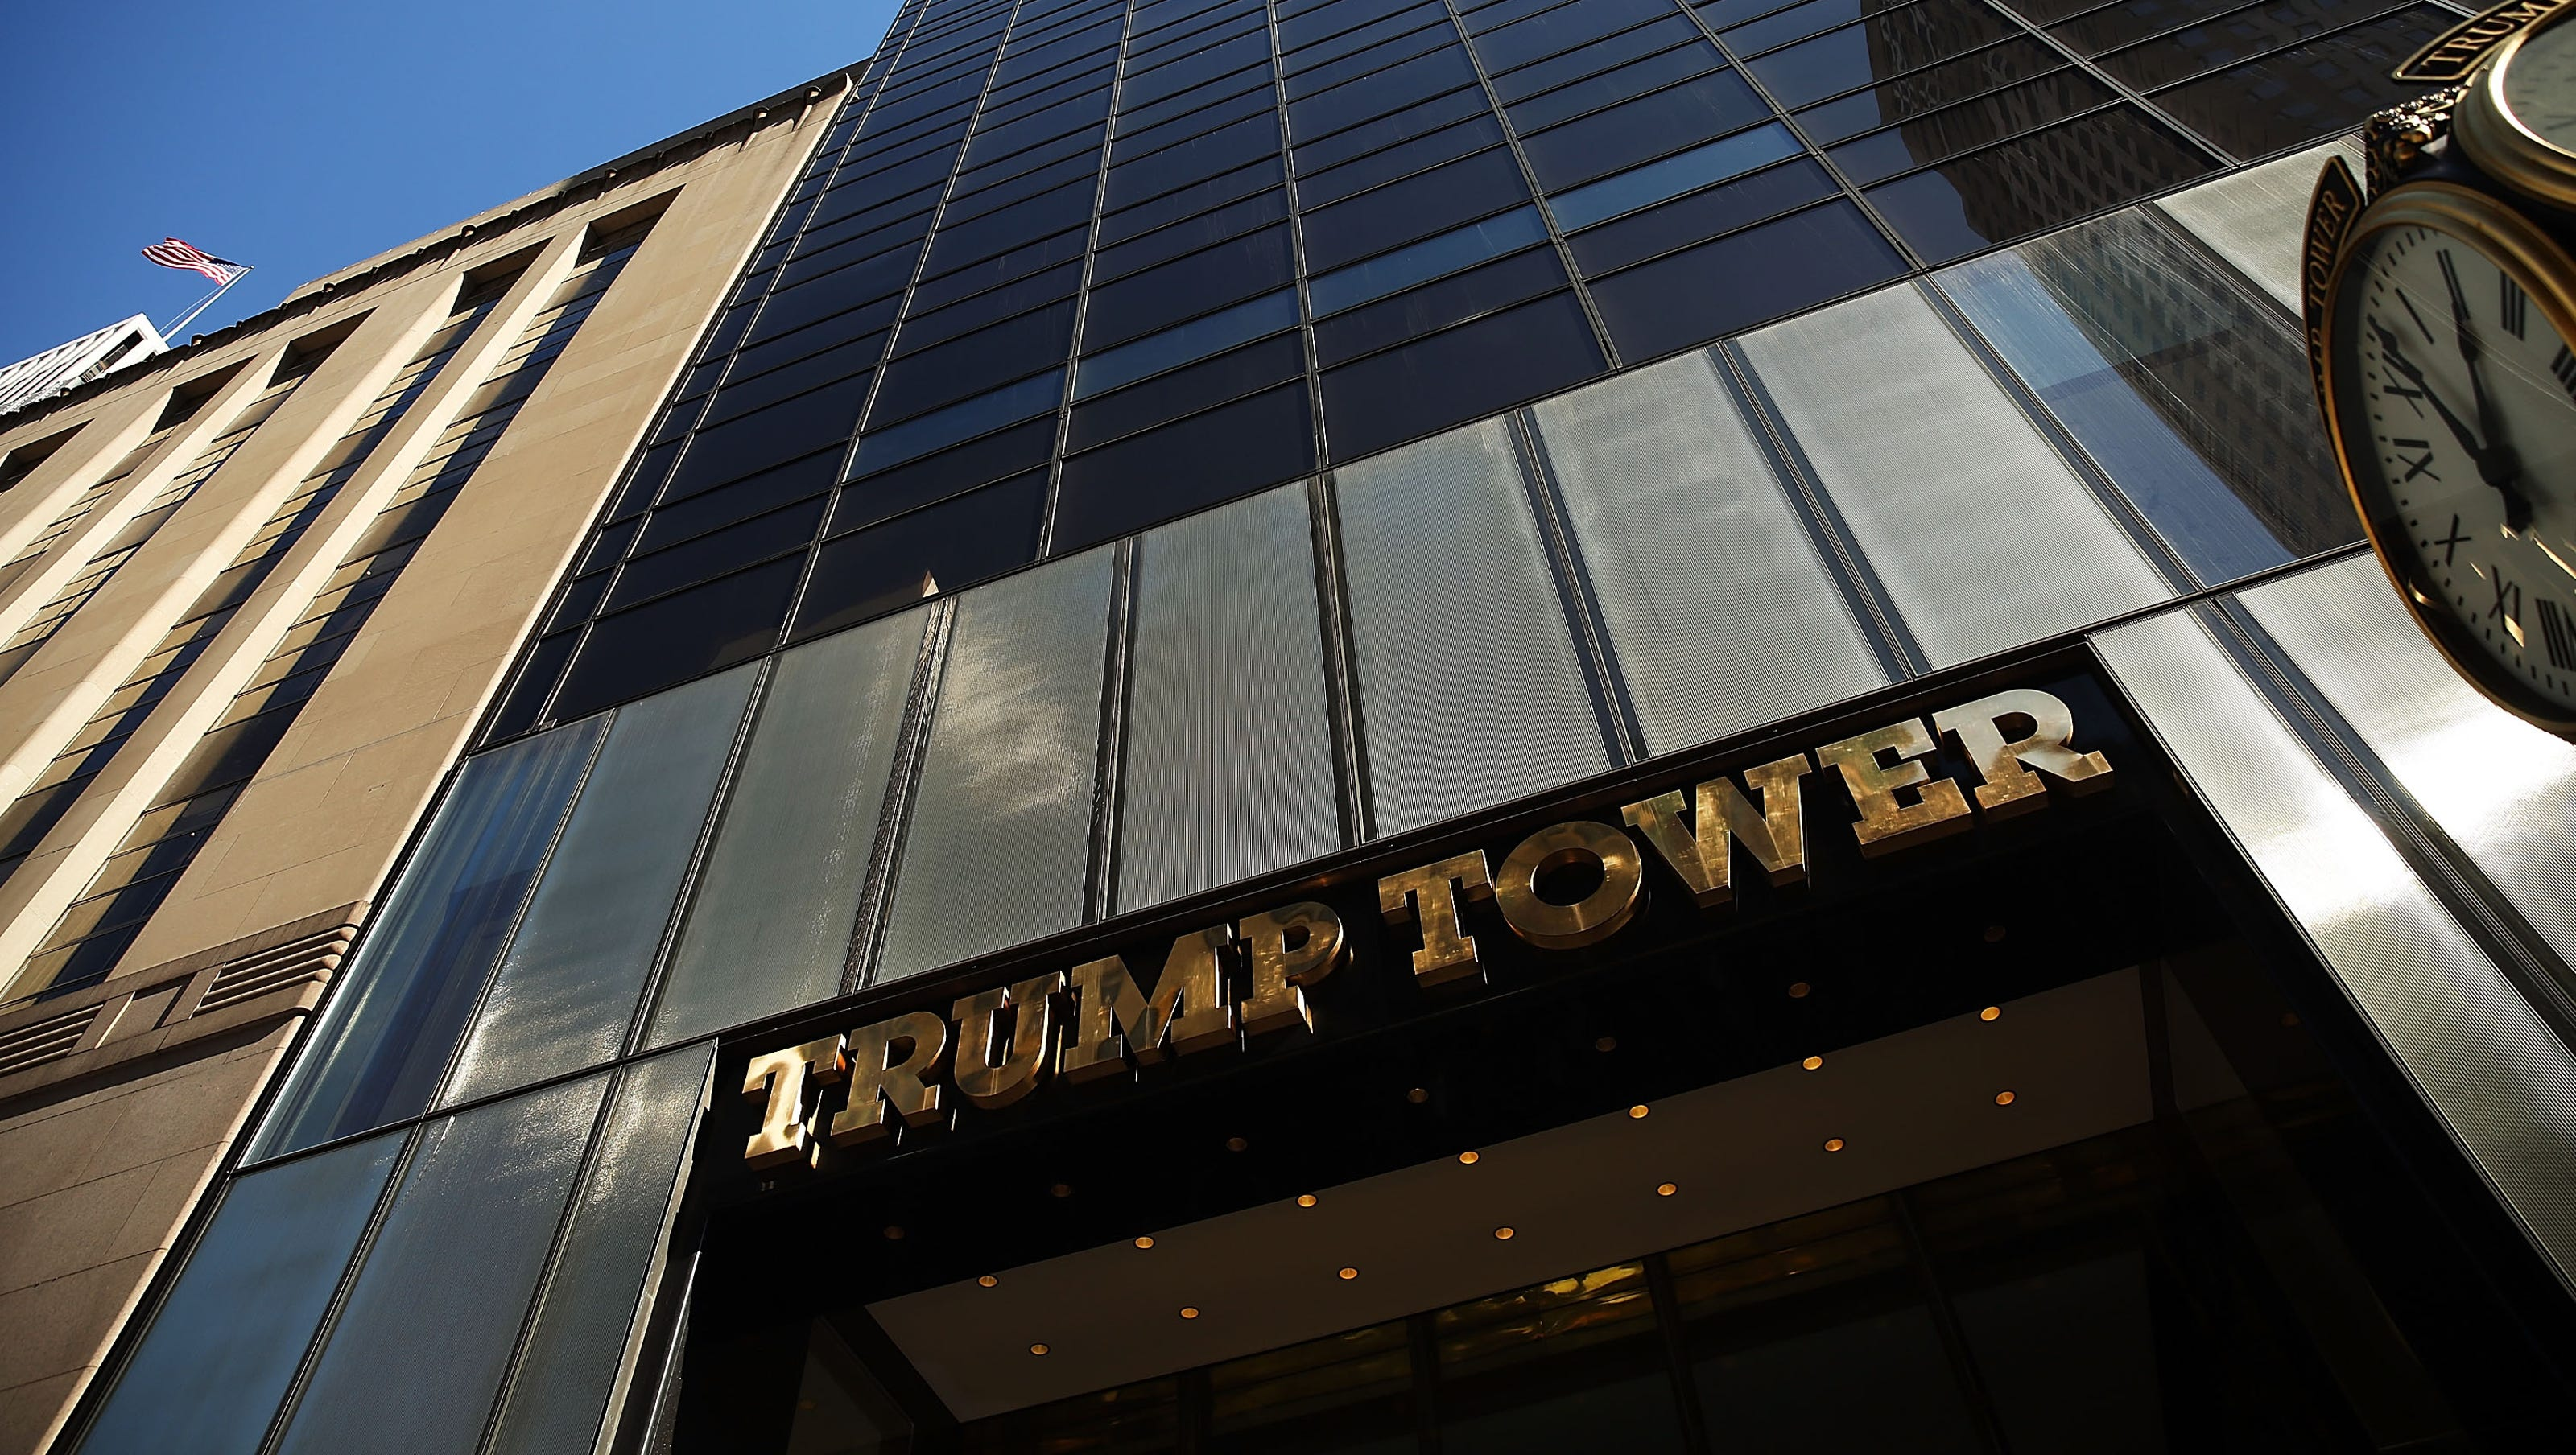 Trump Tower Nyc Map.Trump Tower Changed To Dump Tower On Google Maps Reports Say